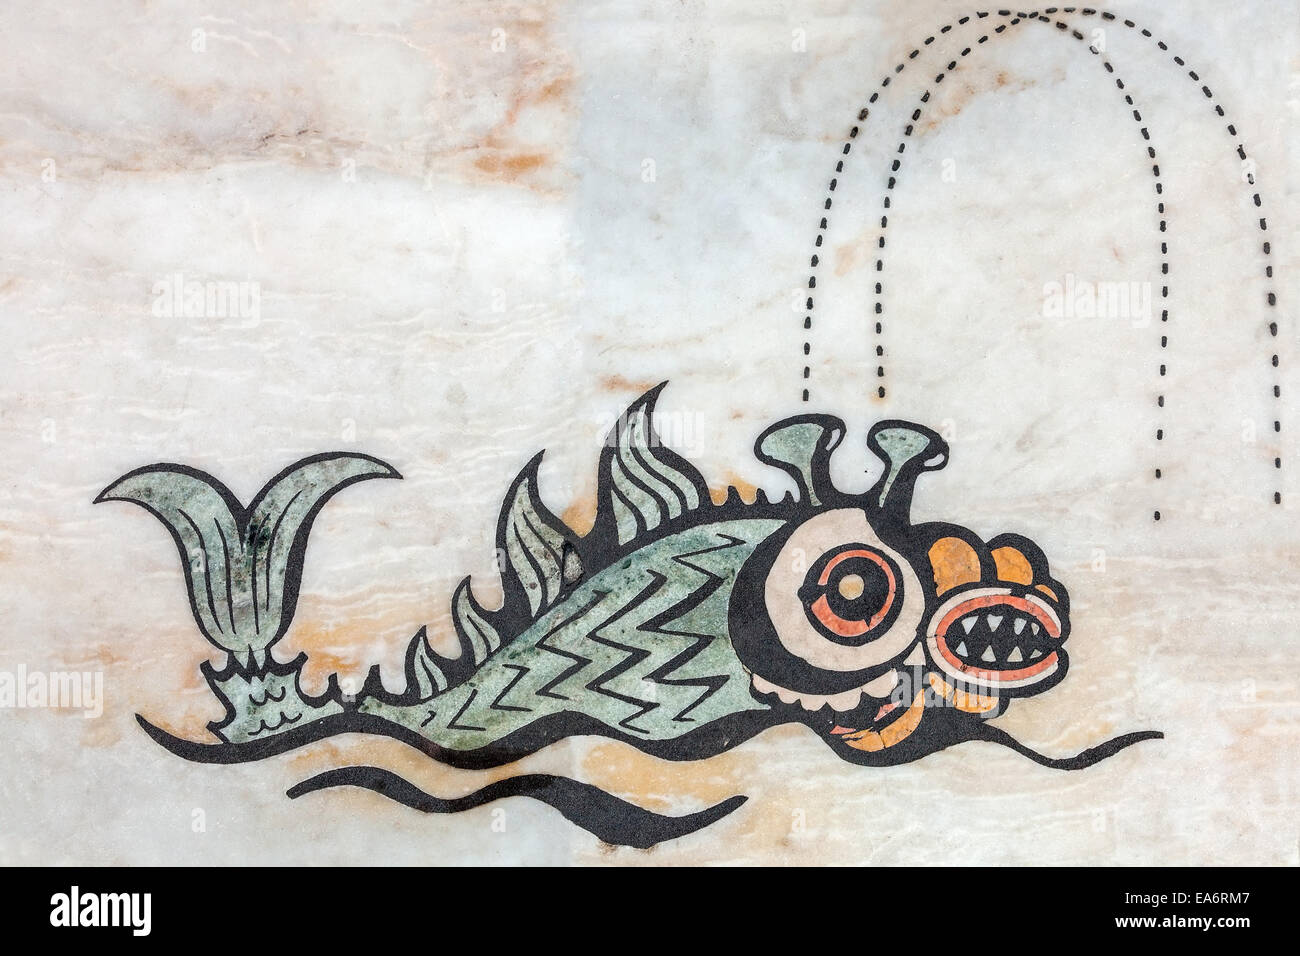 Mythological sea creature decorating the World map in the Padrao dos Descobrimentos, Monument to the Discoveries - Stock Image